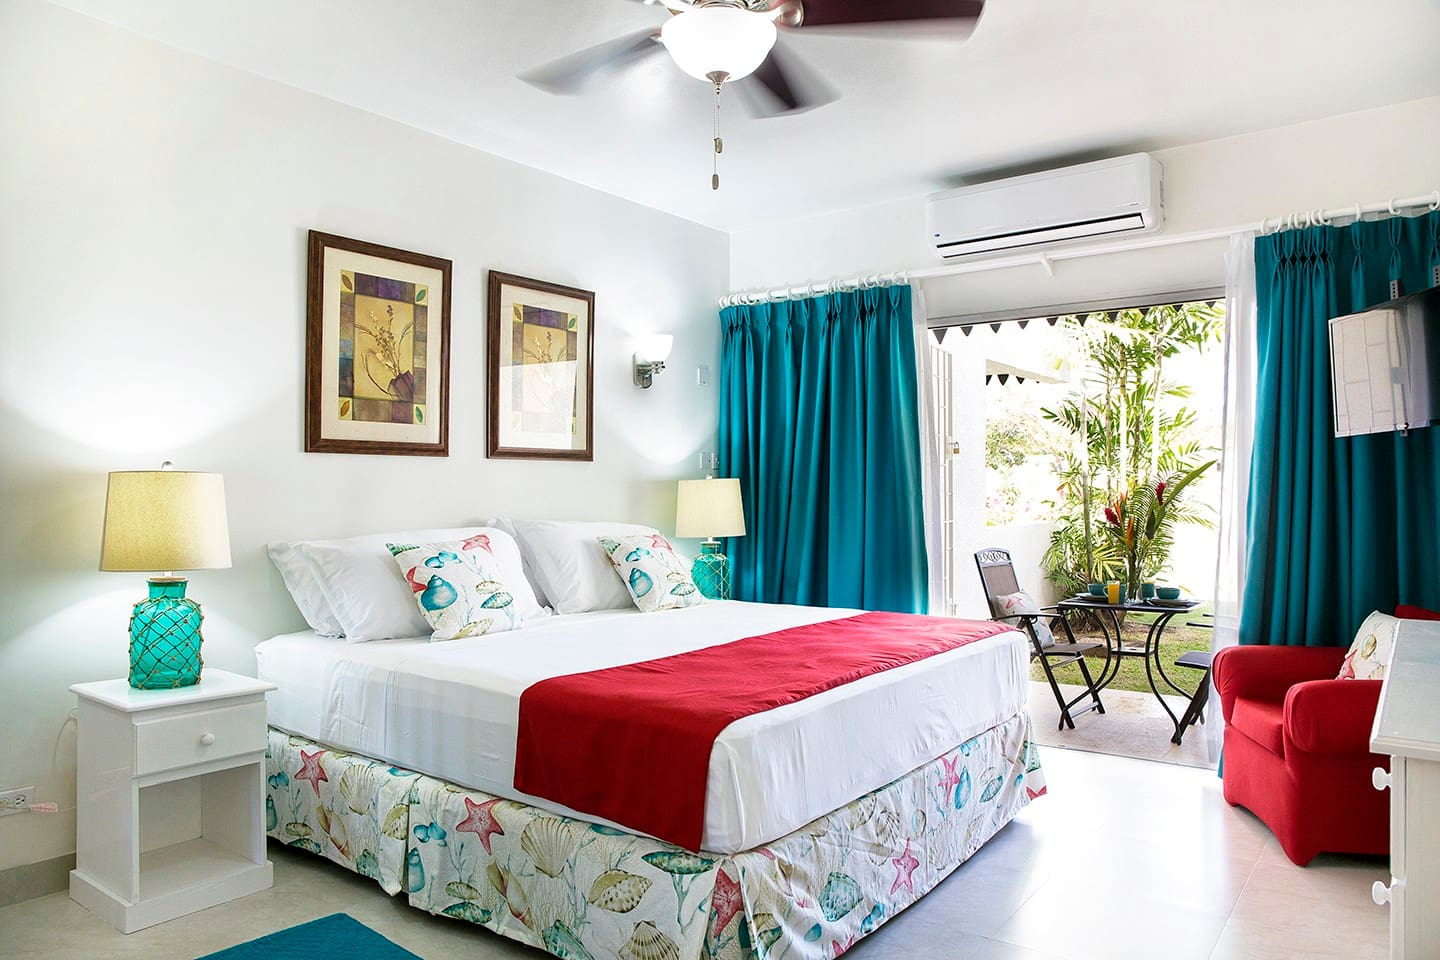 Bedroom - bright and refreshing